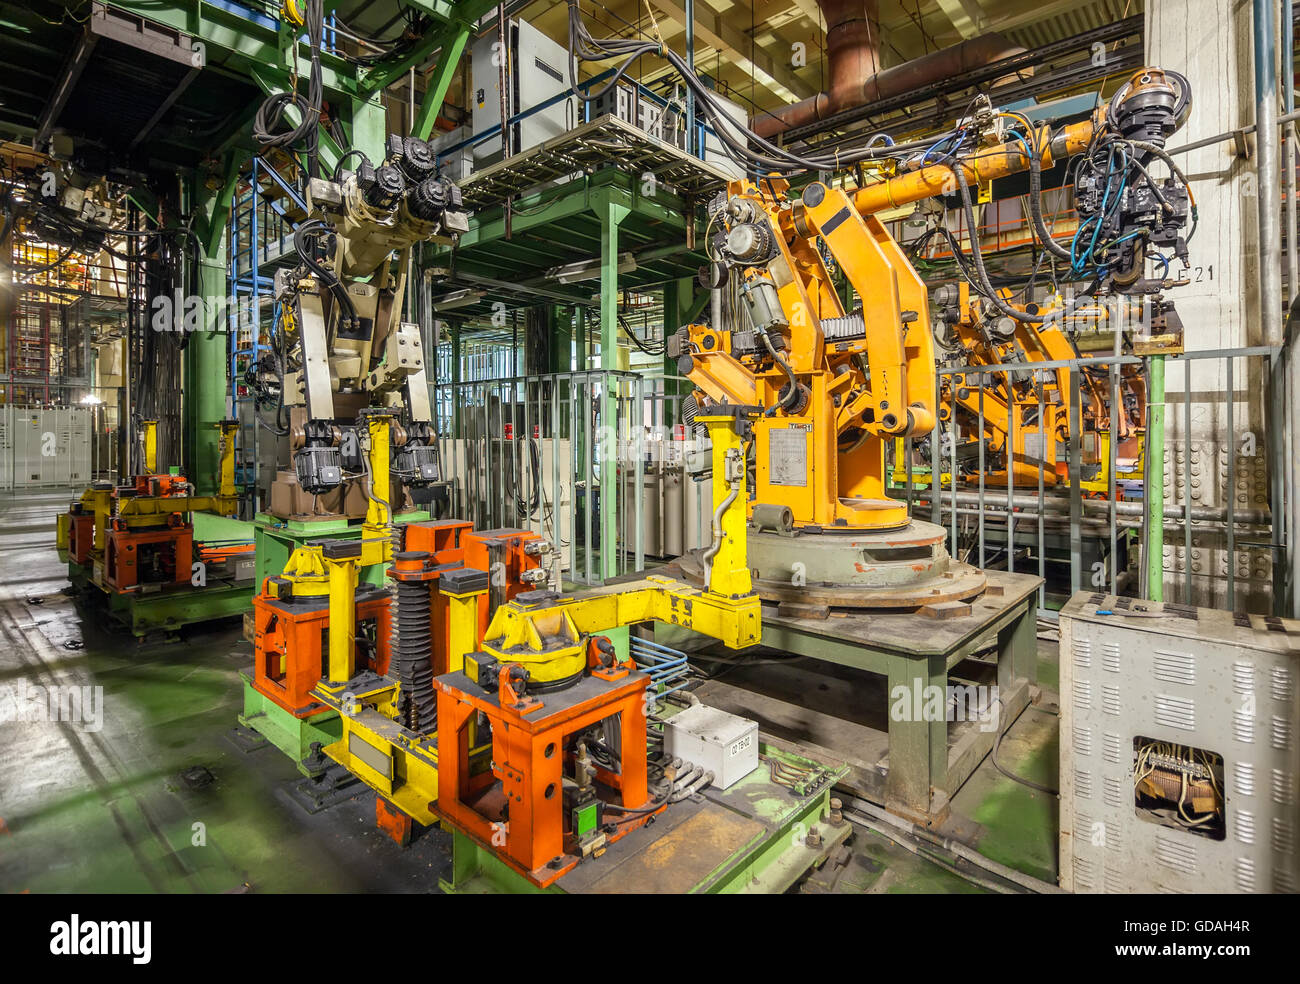 Bankrupt and abandoned automobile plant. Yellow robots welding cars in a production line - Stock Image